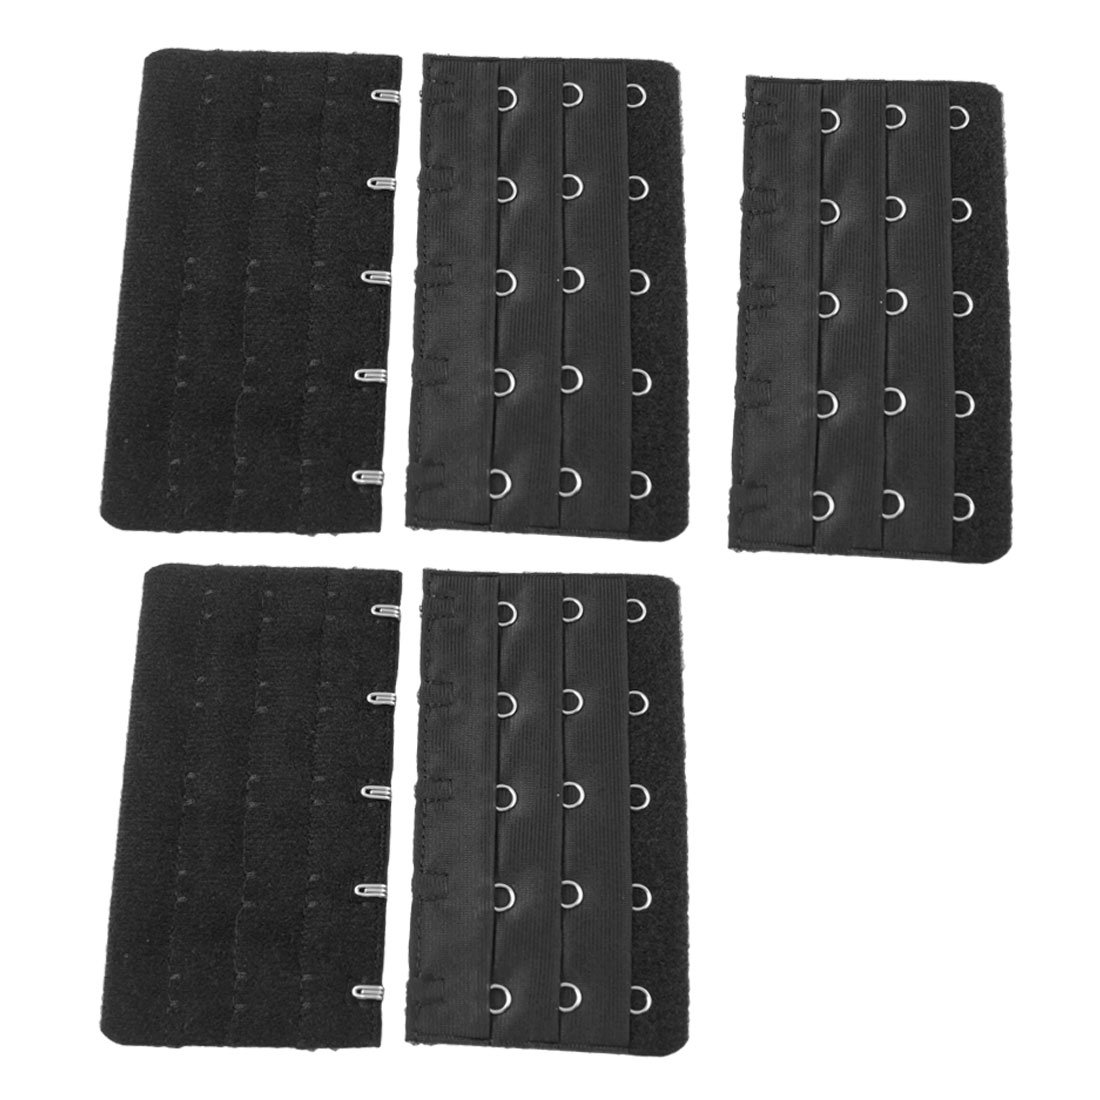 NEW STYLE Black 5 Rows Hook and Eye Tape Extension Bra Strap Extender 5 Pcs for Women